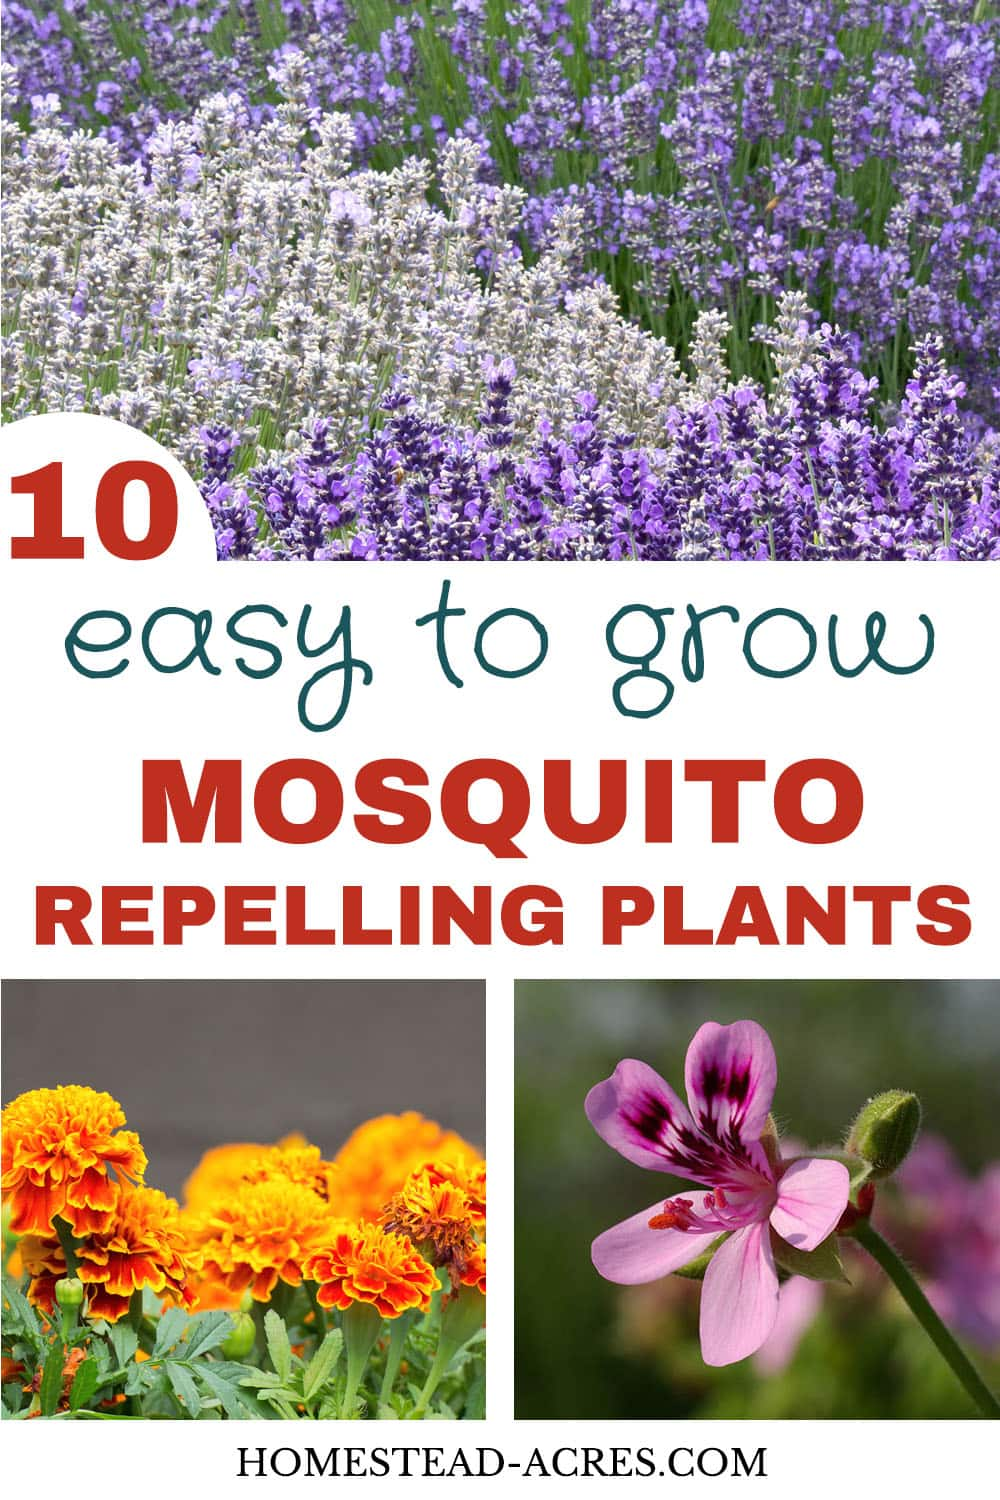 10 Plants That Repel Mosquitoes - Homestead Acres